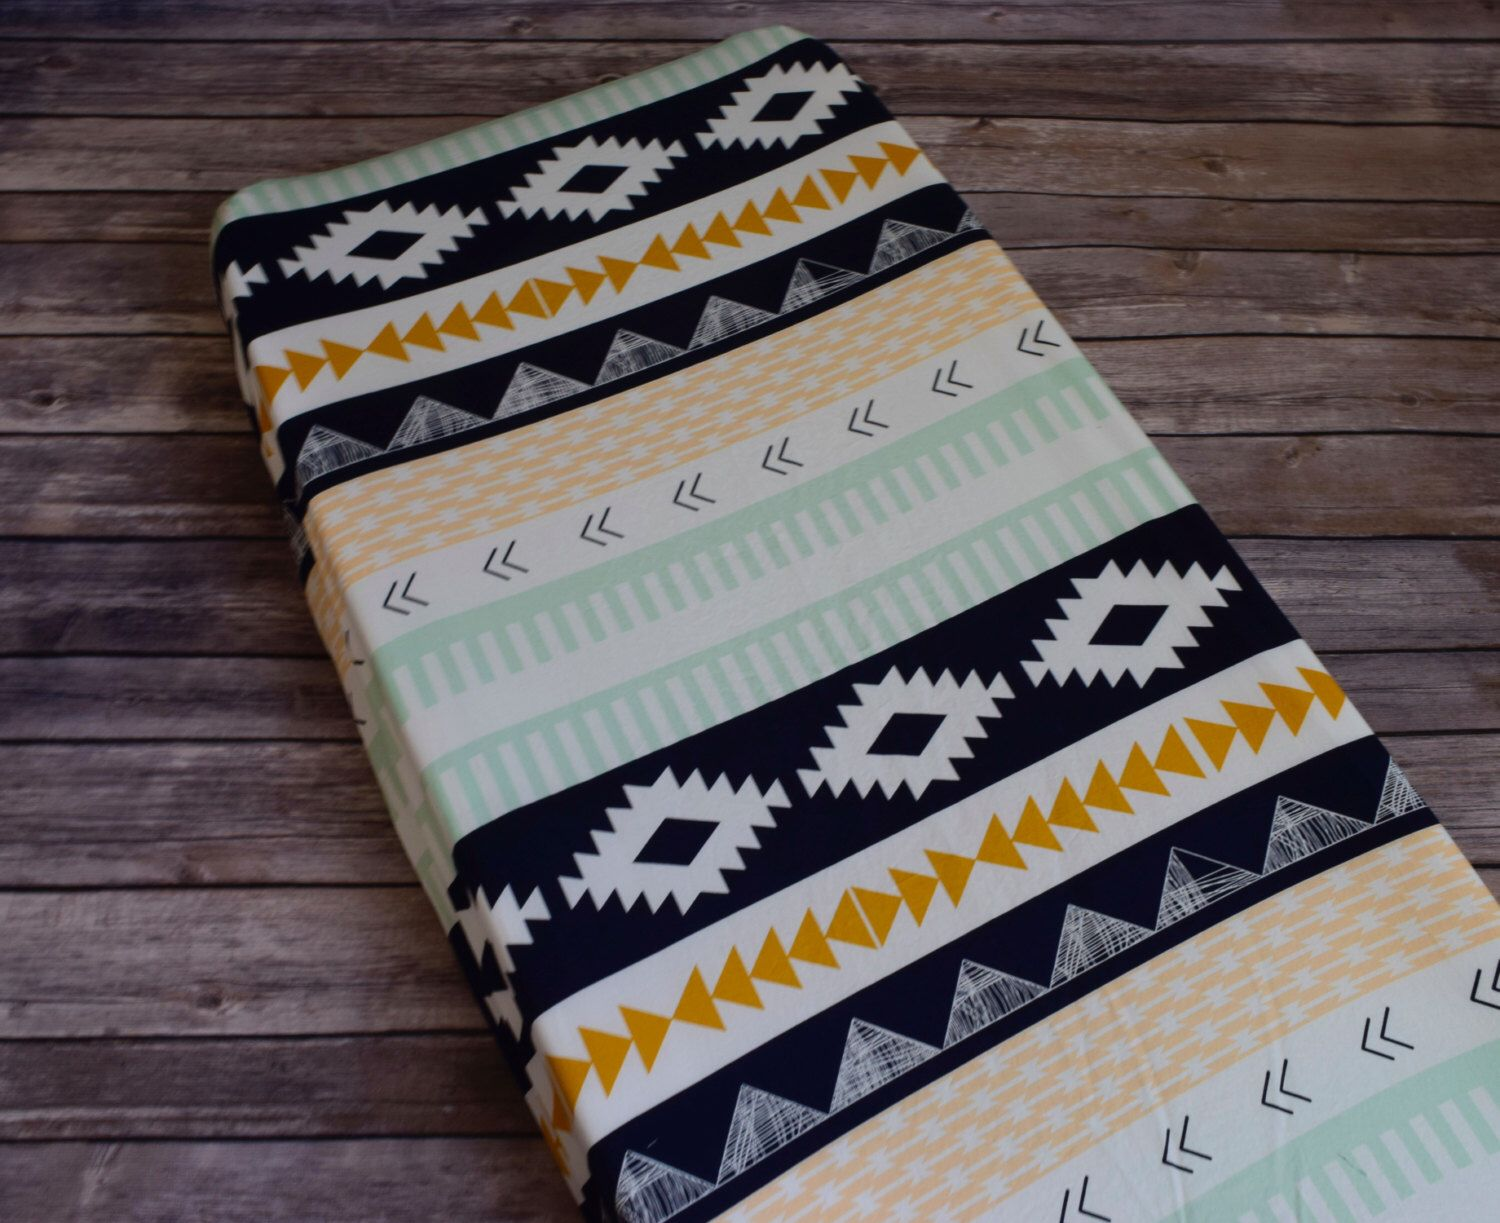 Tribal Changing Pad Cover, Southwestern Changing Pad Cover, Southwestern Baby Bedding, Gender Neutral Changing Pad Cover, Baby Shower Gift by KenziesQuiltShop on Etsy https://www.etsy.com/listing/479741028/tribal-changing-pad-cover-southwestern